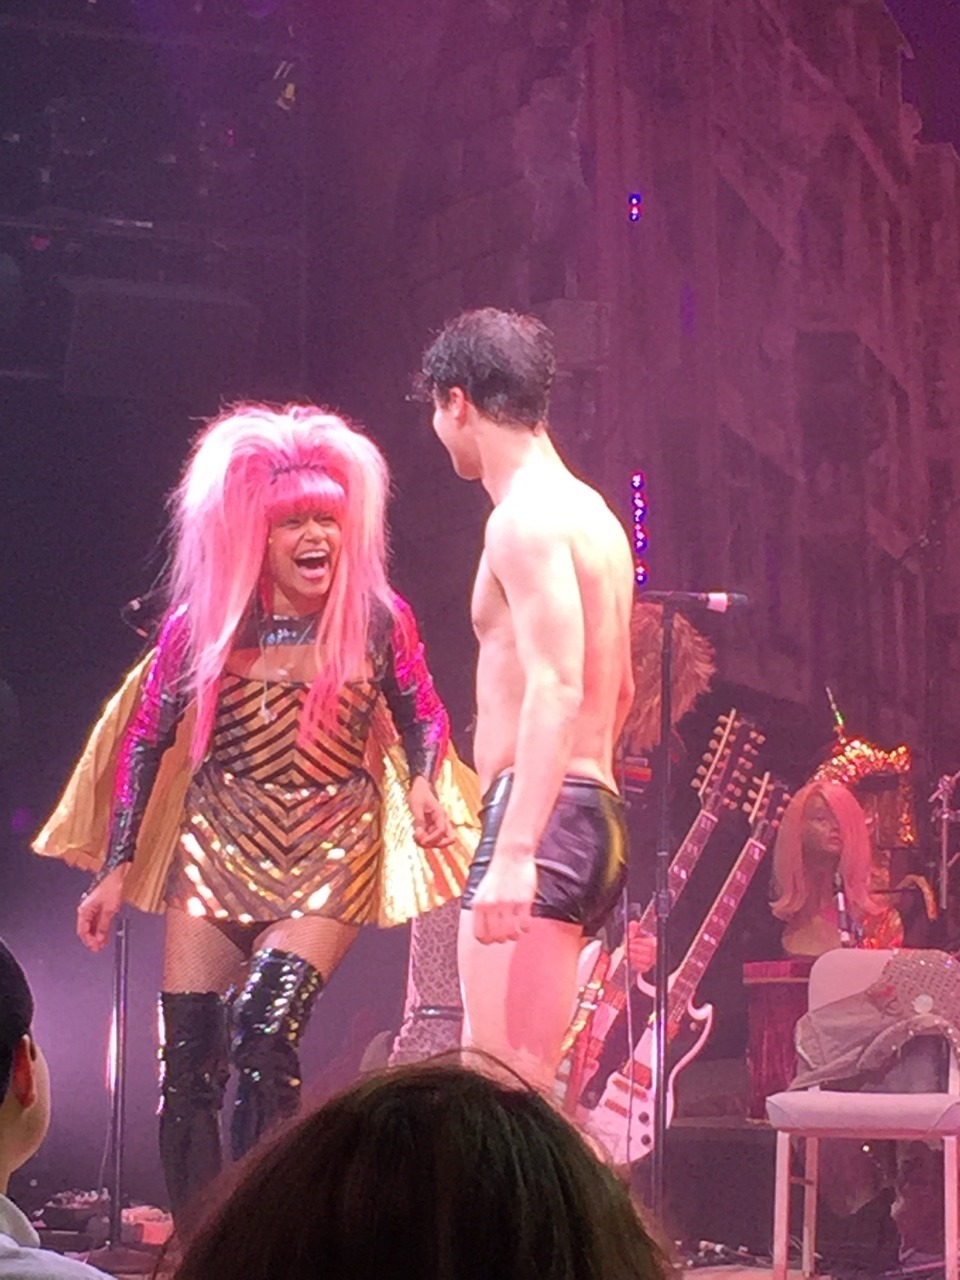 darrenishedwig - Pics and gifs of Darren in Hedwig and the Angry Inch on Broadway. Tumblr_nq6b14Y2Qk1qdtnwjo10_1280